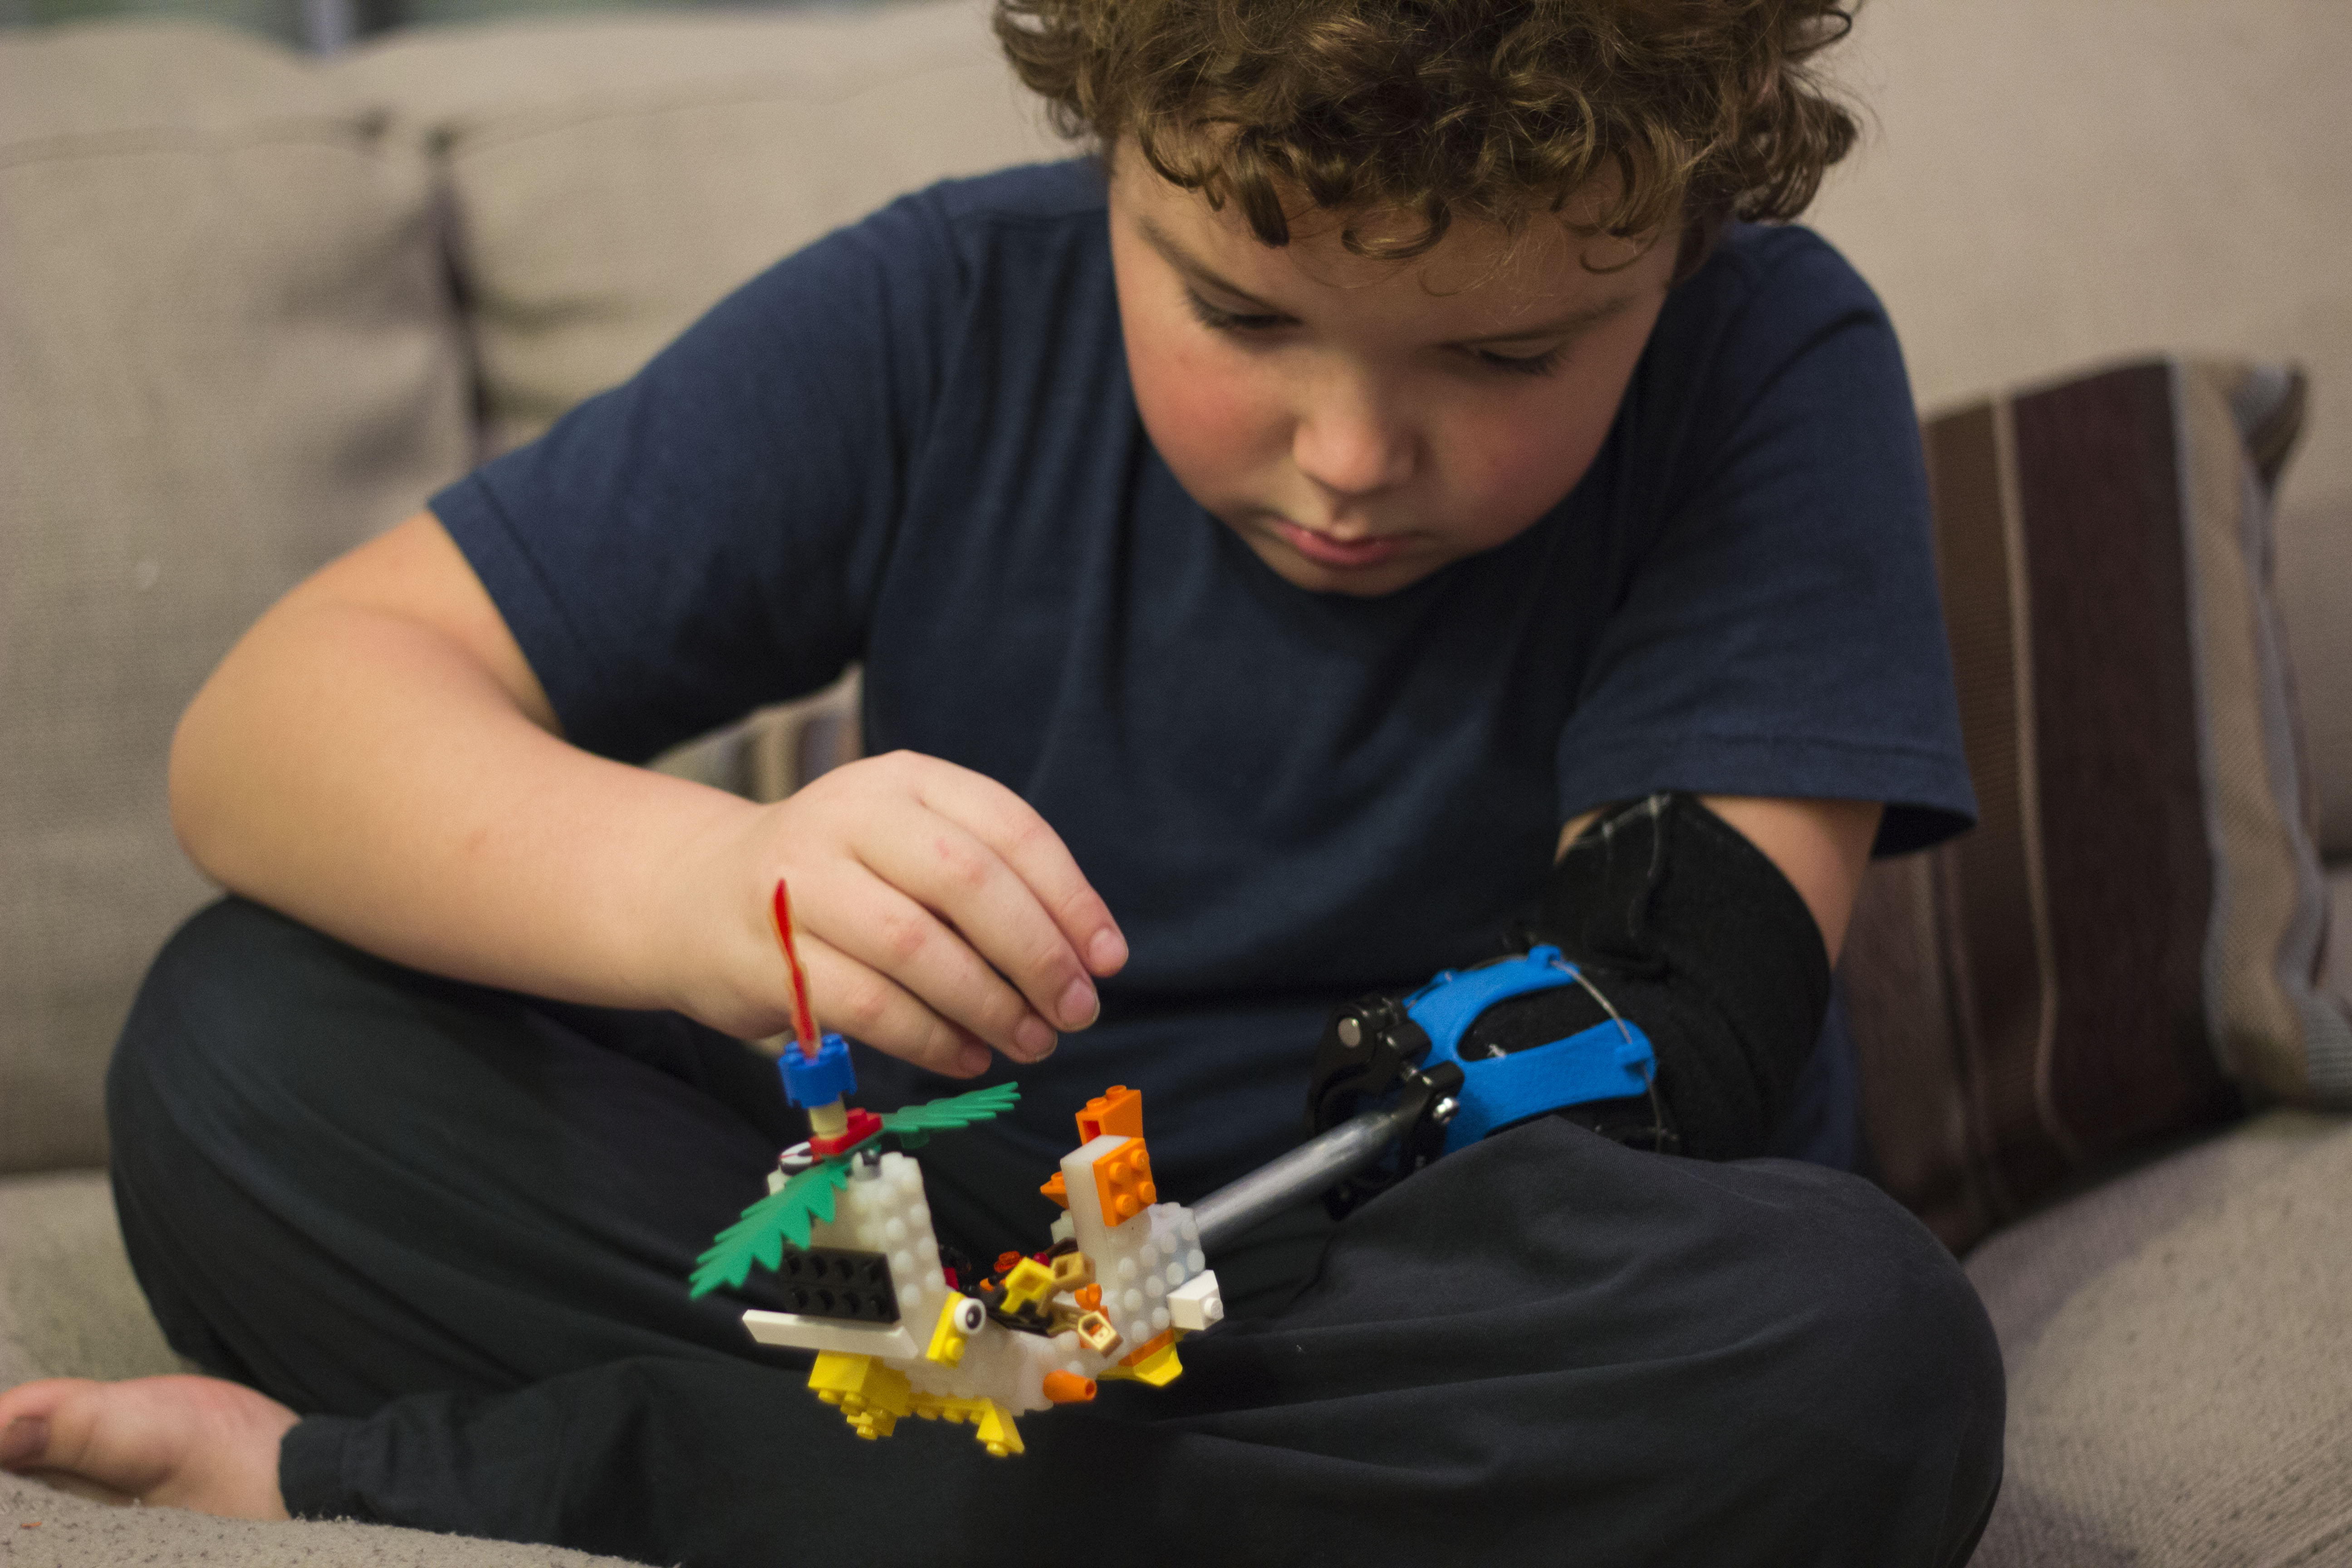 The LEGO attachment has two functions. First is purely as a building to for fun. More importantly it is a platform for him to prototype future arm attachments.